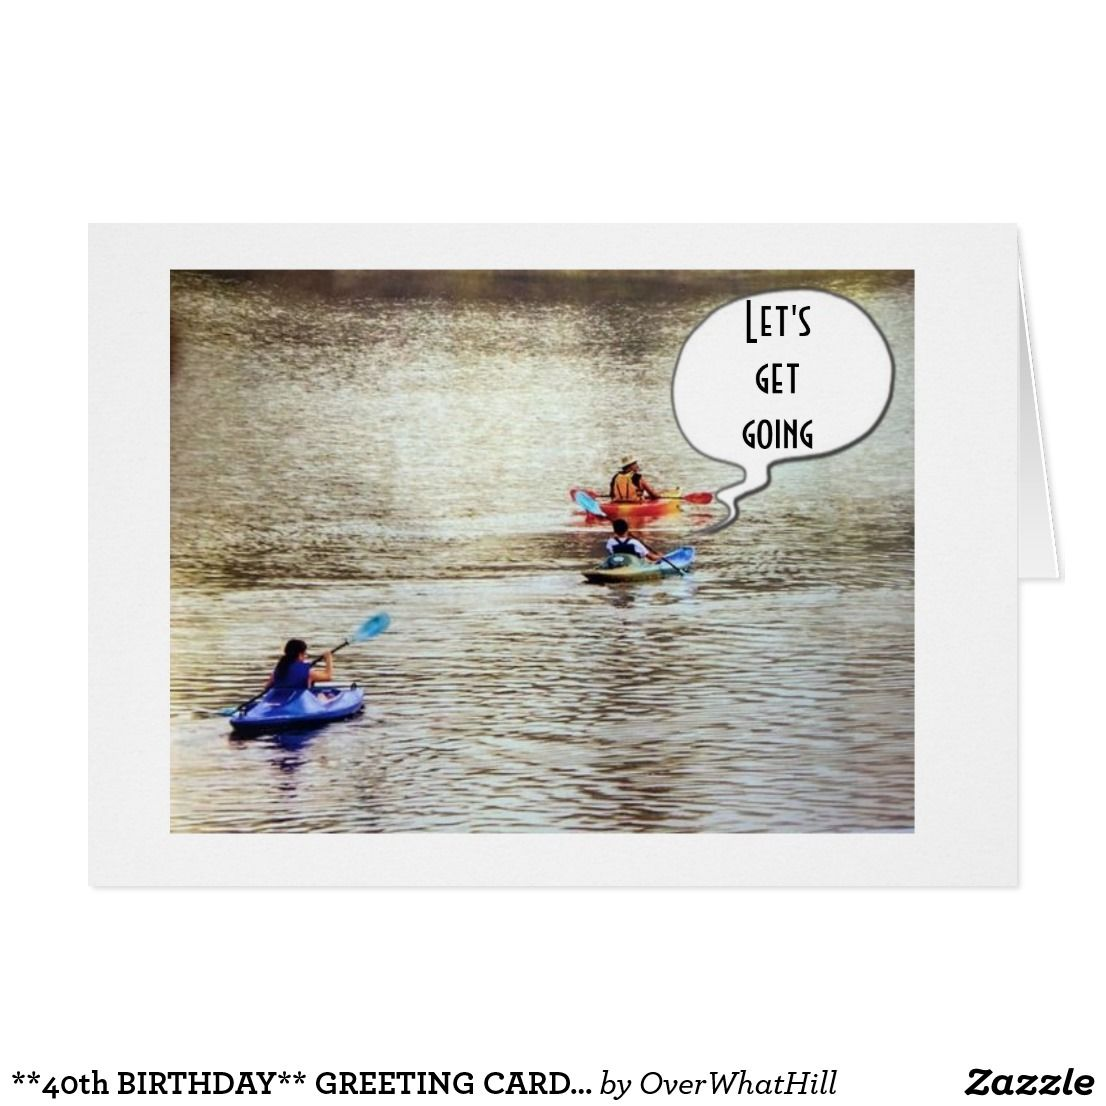 40th birthday greetings images greeting card examples 40th birthday greeting card kayak style birthday greeting cards 40th birthday greeting card kayak style kristyandbryce kristyandbryce Choice Image